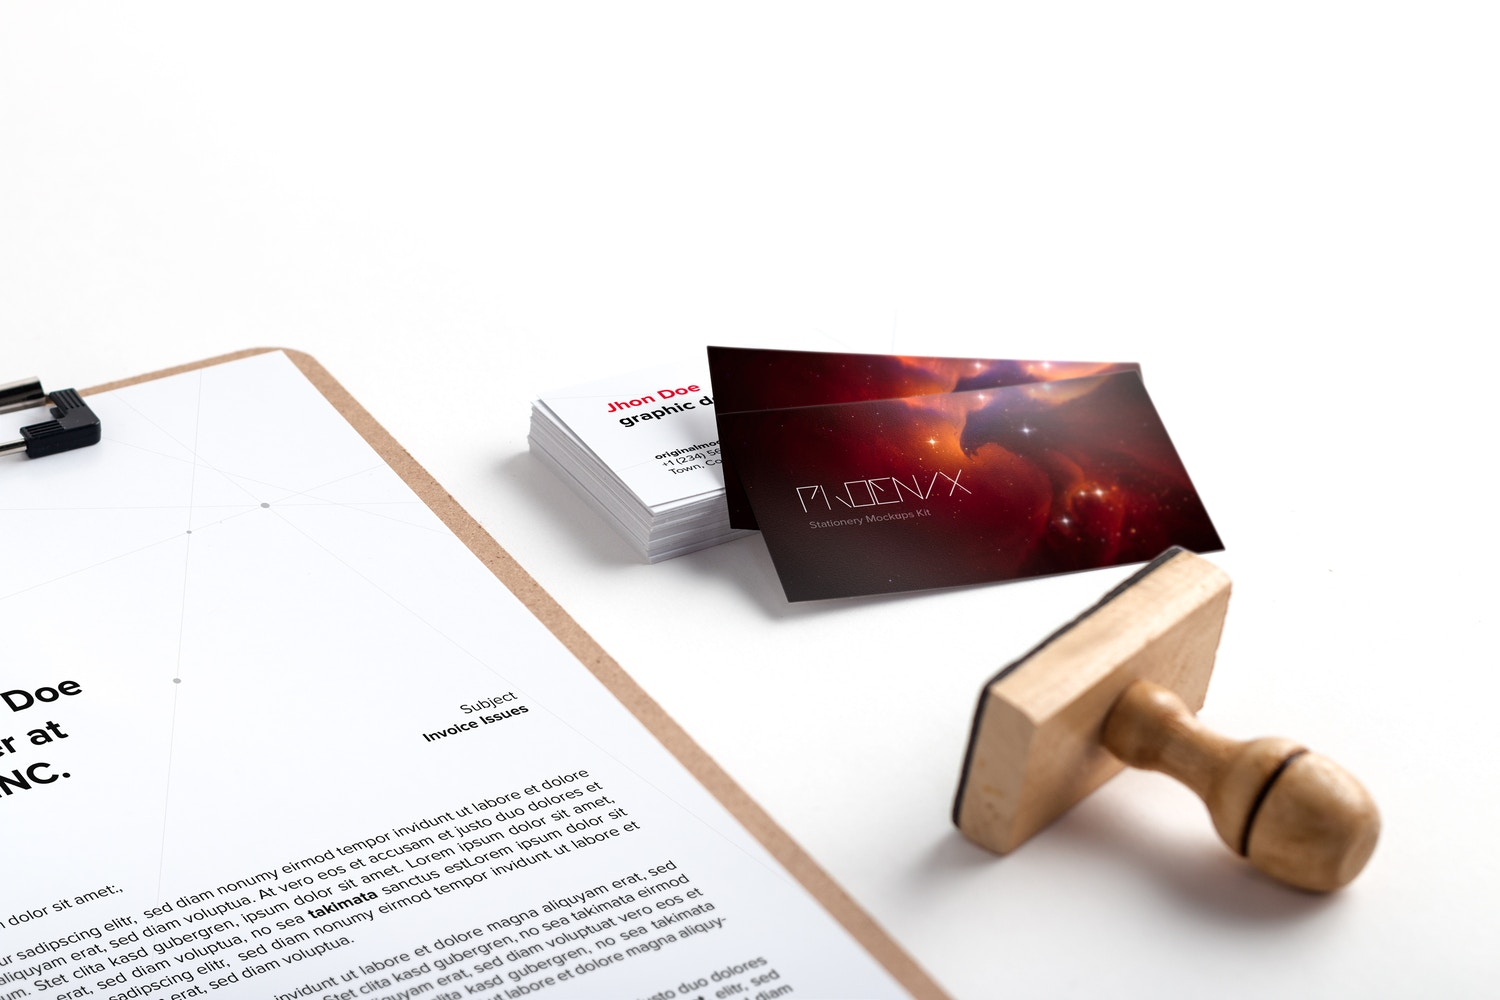 A4 Clipboard and Business Cards Mockup 02 por Original Mockups en Original Mockups